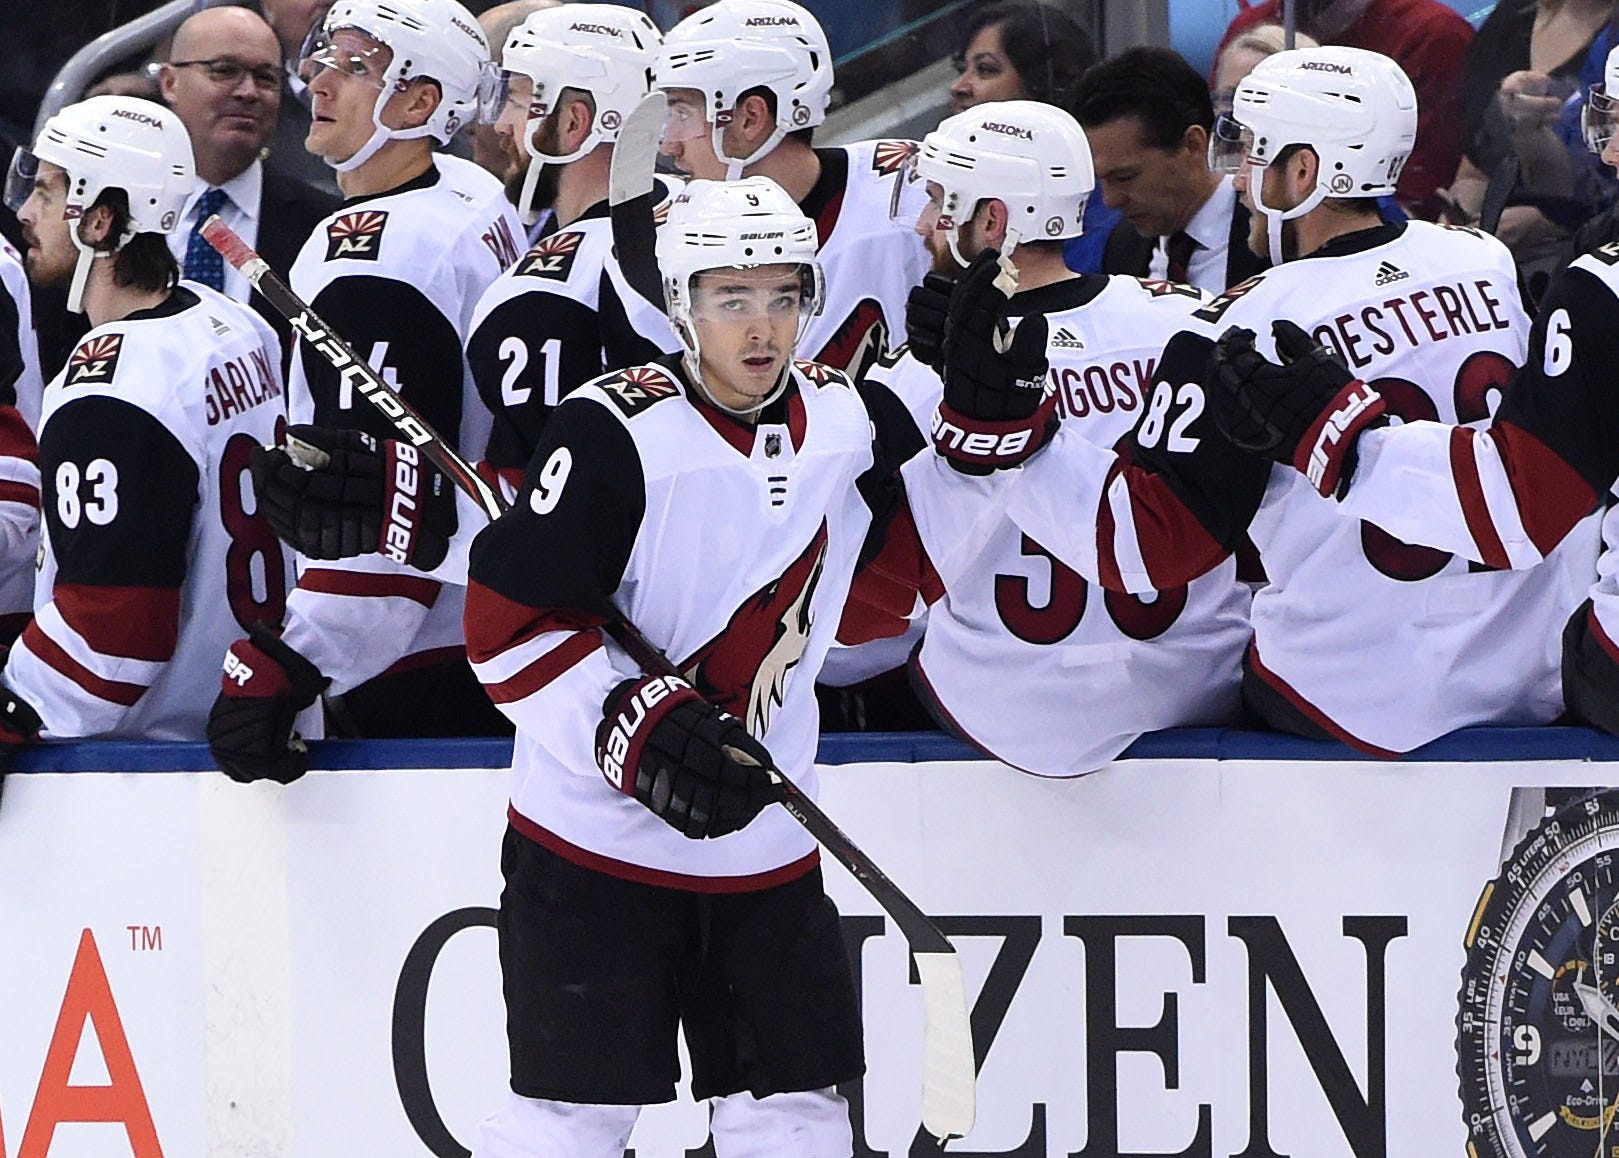 Arizona Coyotes: Hinostroza Scores Winner As Coyotes Beat Maple Leafs